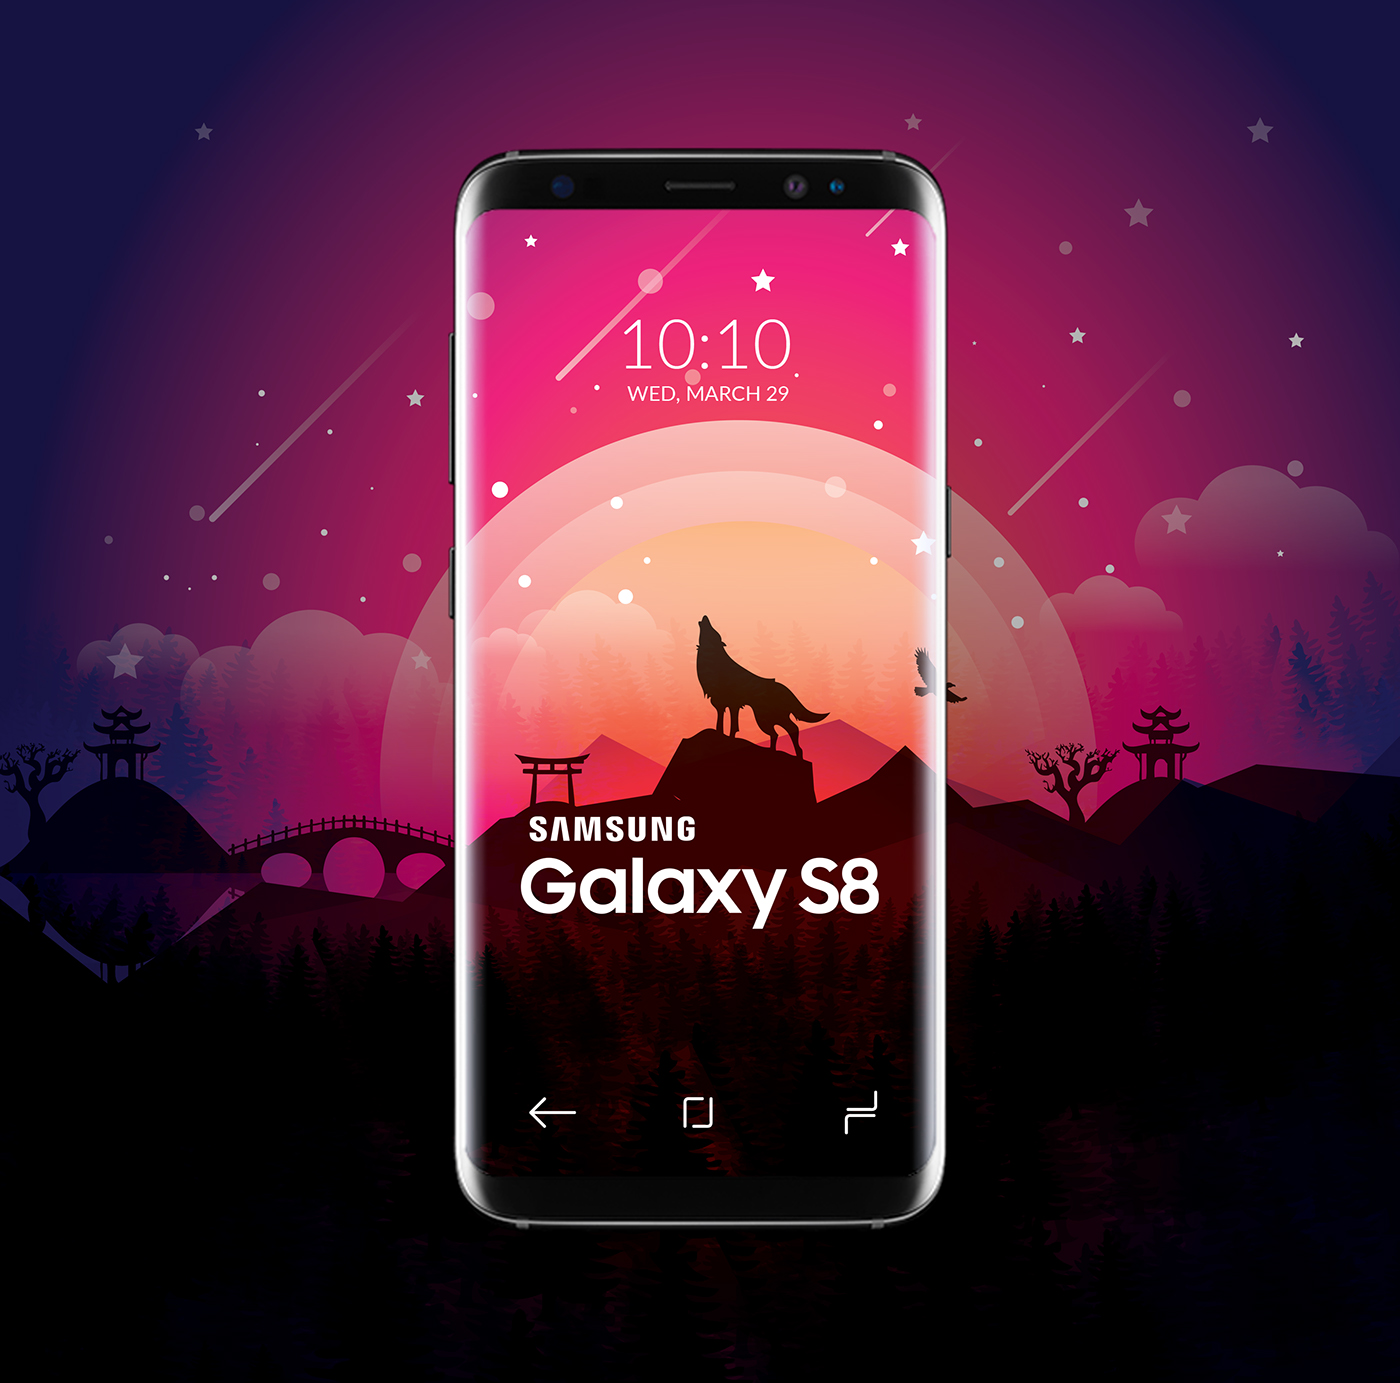 Samsung Galaxy S8 Theme Wallpaper On Behance